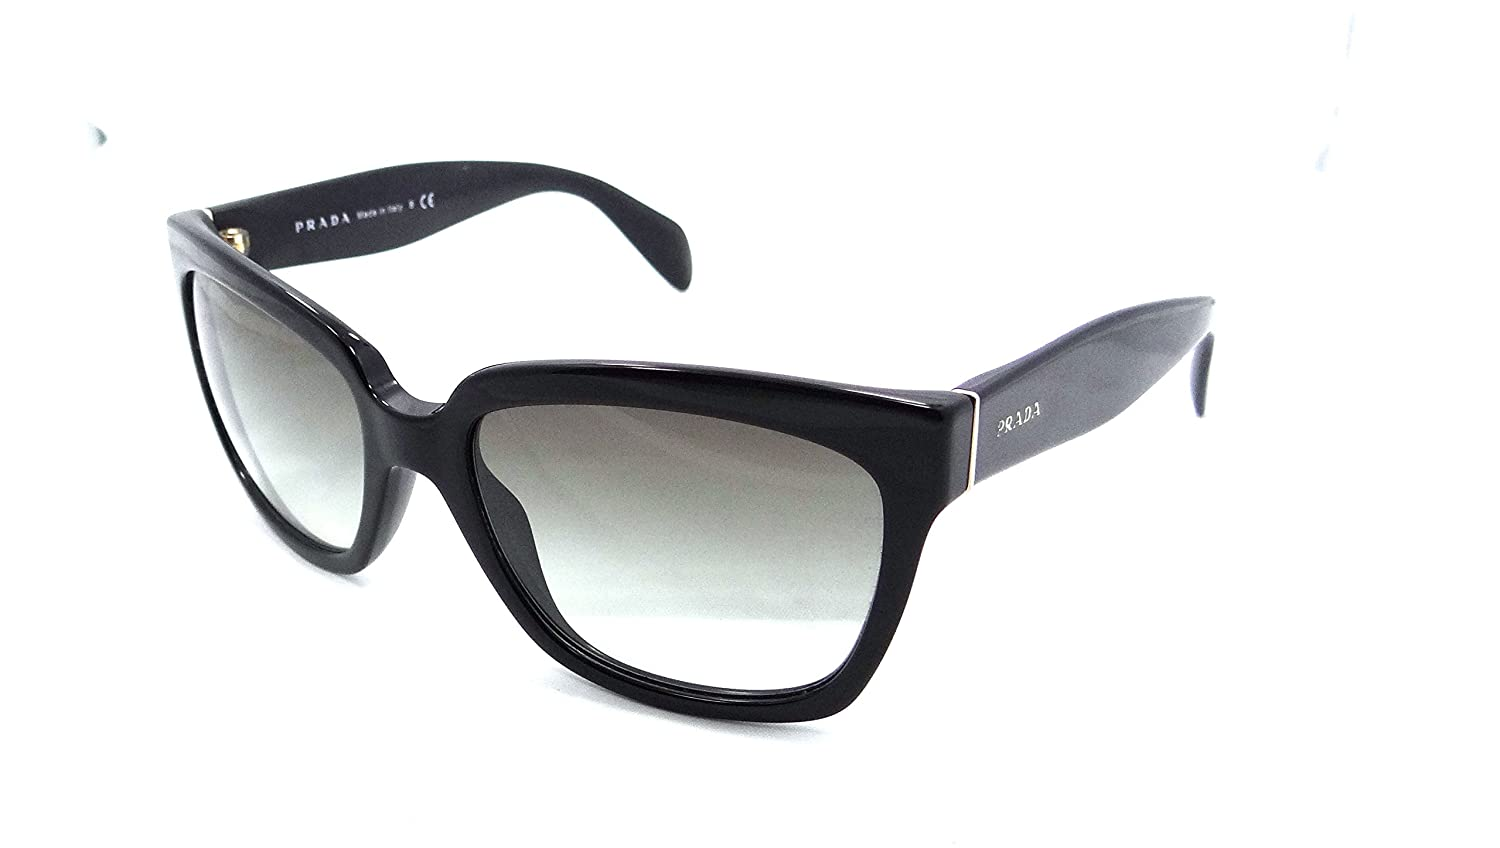 1424d018d Amazon.com: Prada Sunglasses Spr 07p 1ab-0a7 56x18 Shiny Black / Grey  Gradient Made in Italy: Clothing